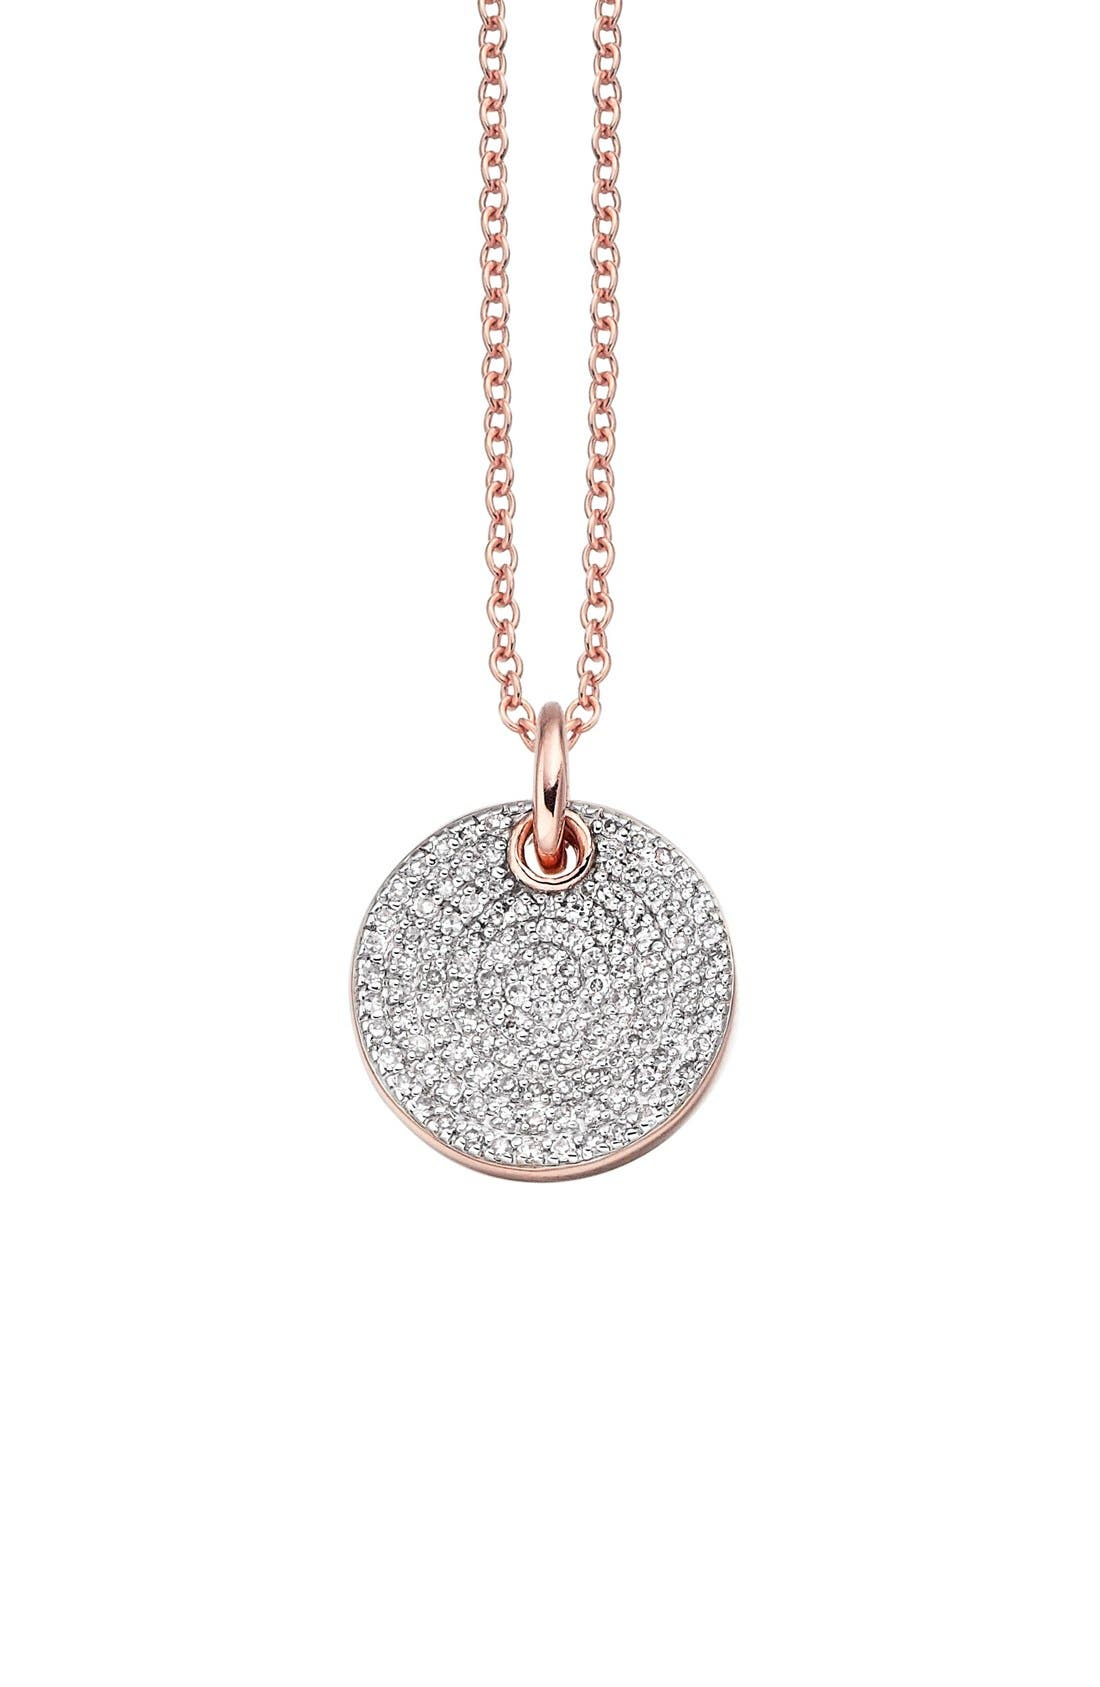 MONICA VINADER Ava Diamond Disc Pendant